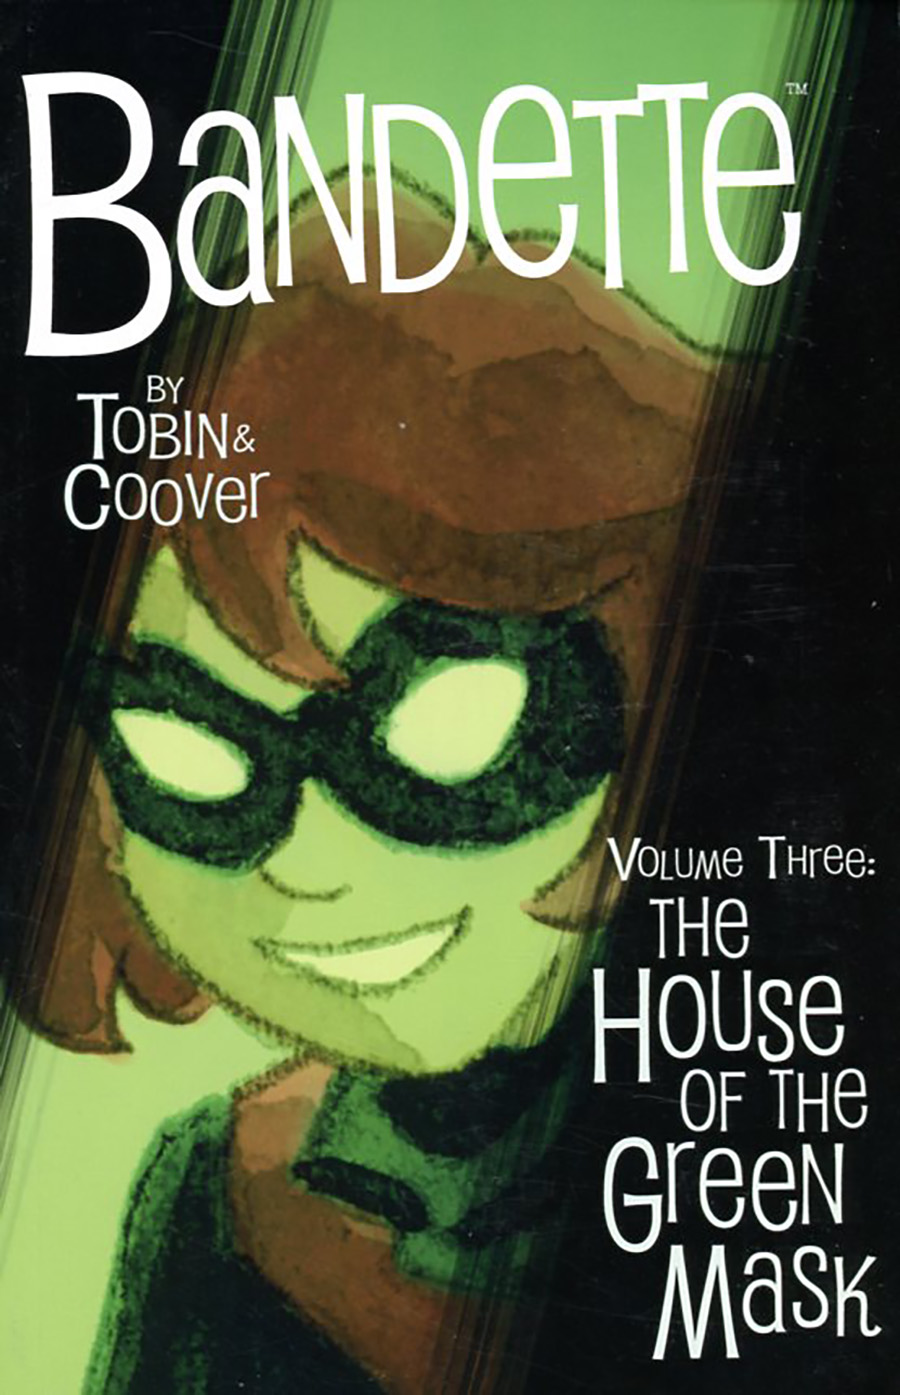 Bandette Vol 3 House Of The Green Mask TP